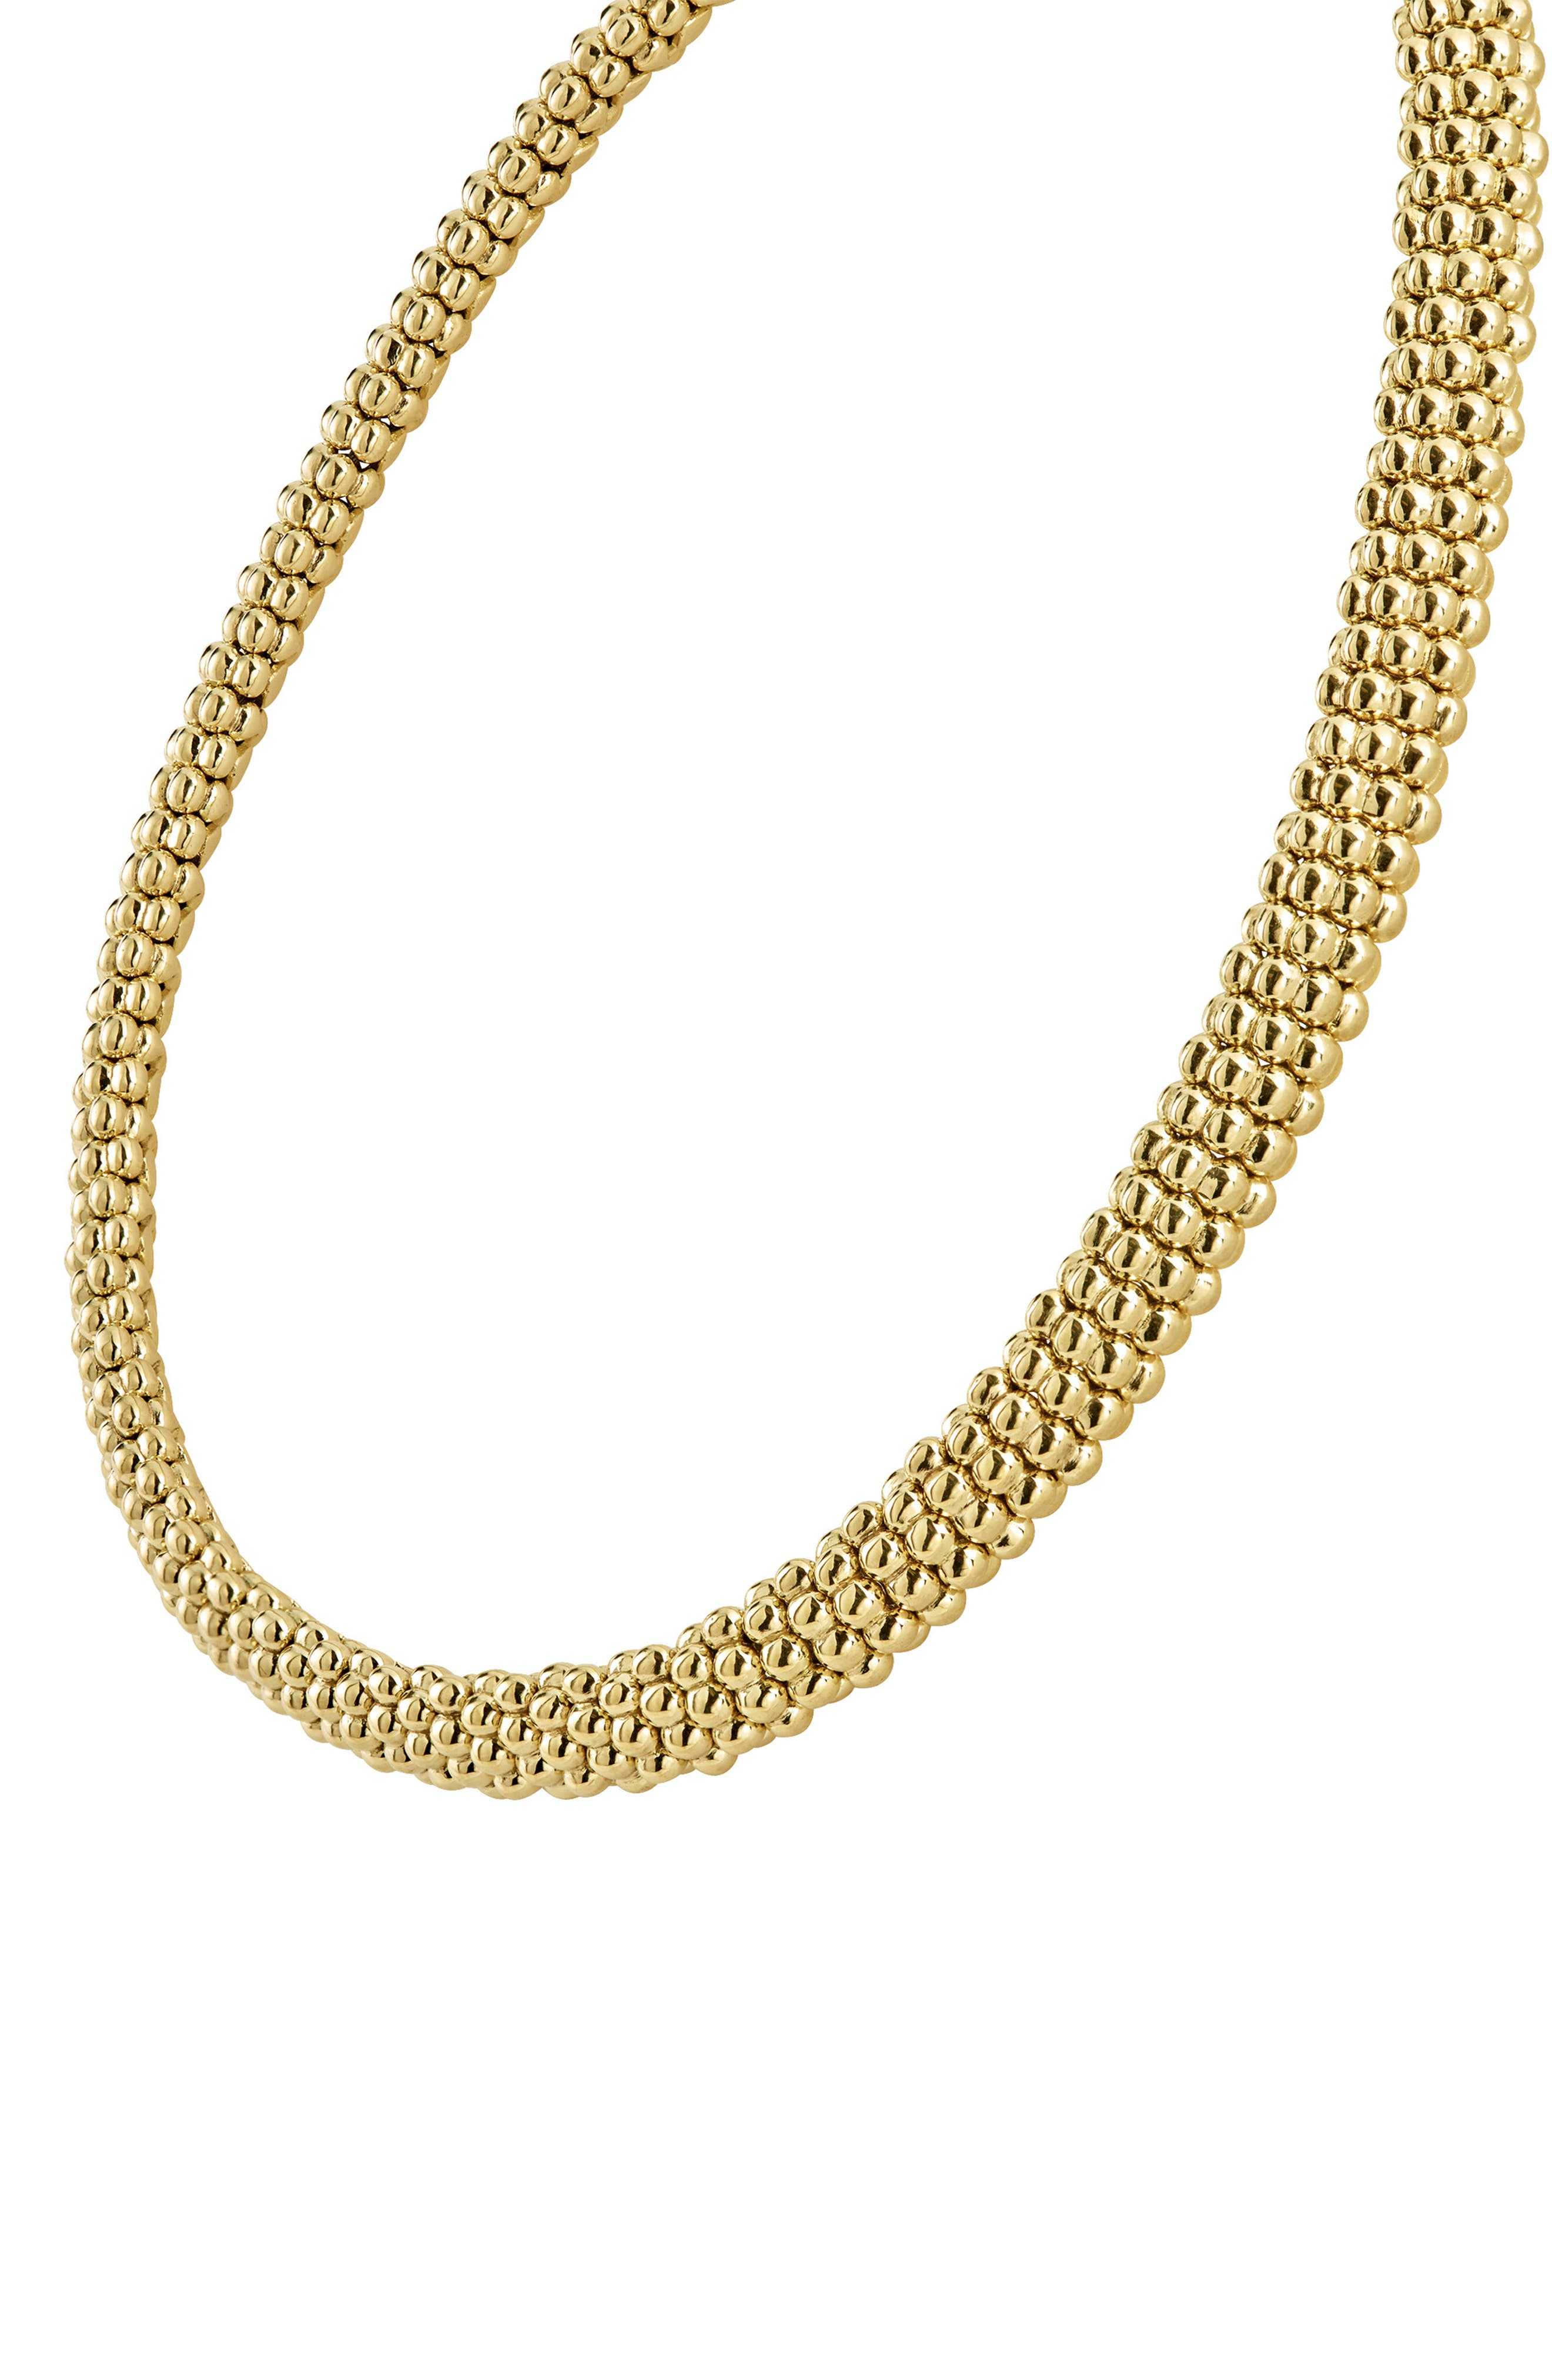 Caviar Gold Rope Necklace,                             Alternate thumbnail 6, color,                             GOLD